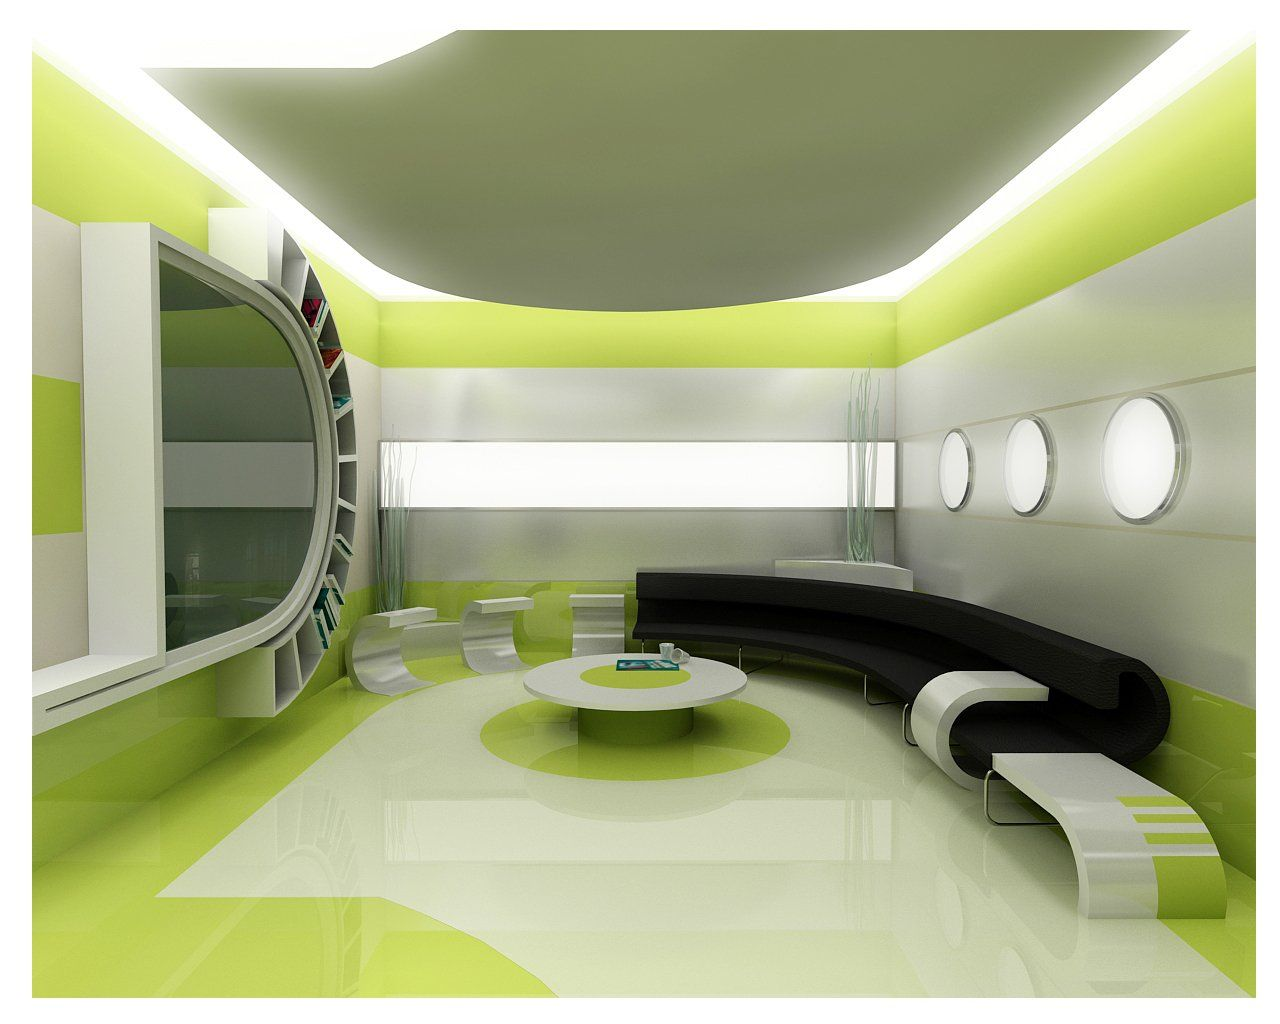 Futuristic Cool Interior Design With Wonderful Lightings: Cool Interior Design Curve Bench Round Coffee Table Green Wallpaper